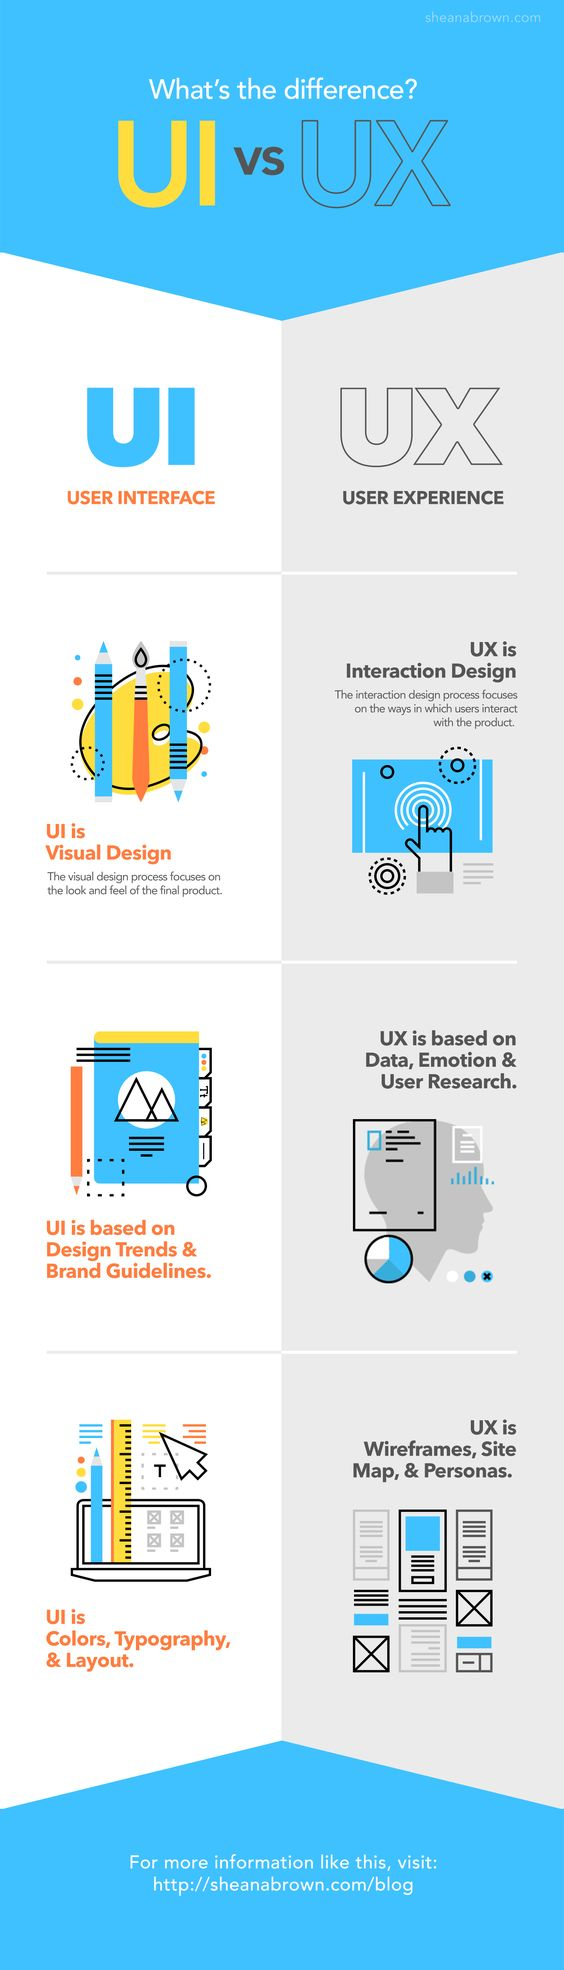 UI versus UX - what's the difference